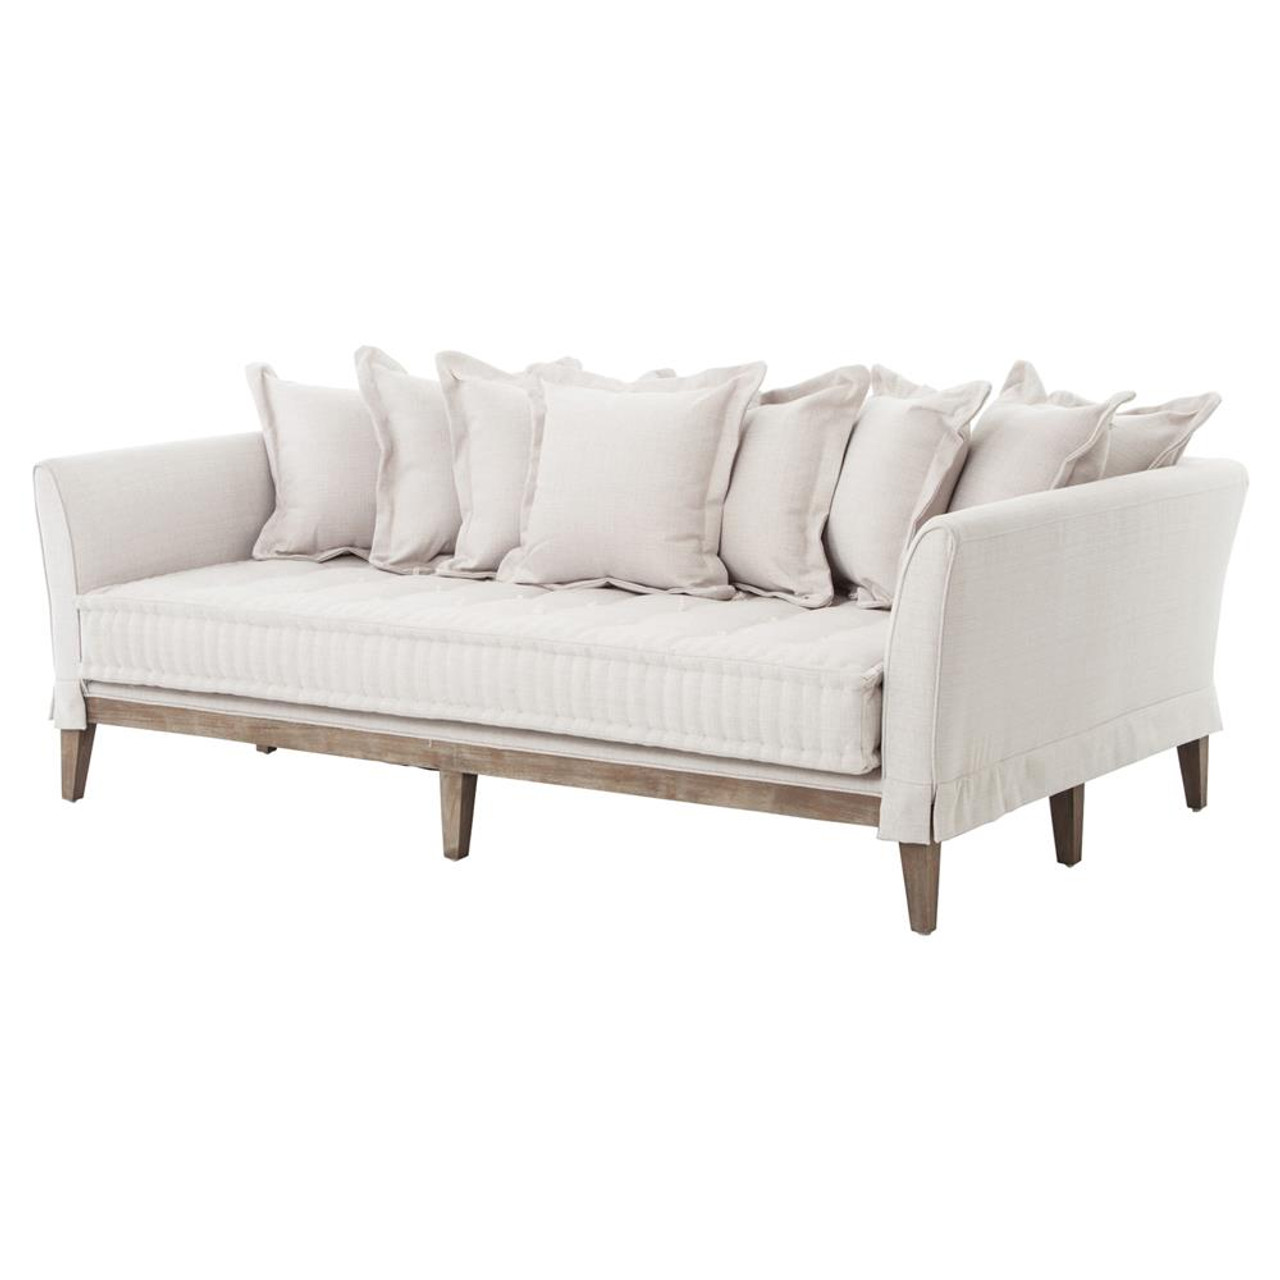 Superb Dedon French Country Coastal Style Light Sand Sofa